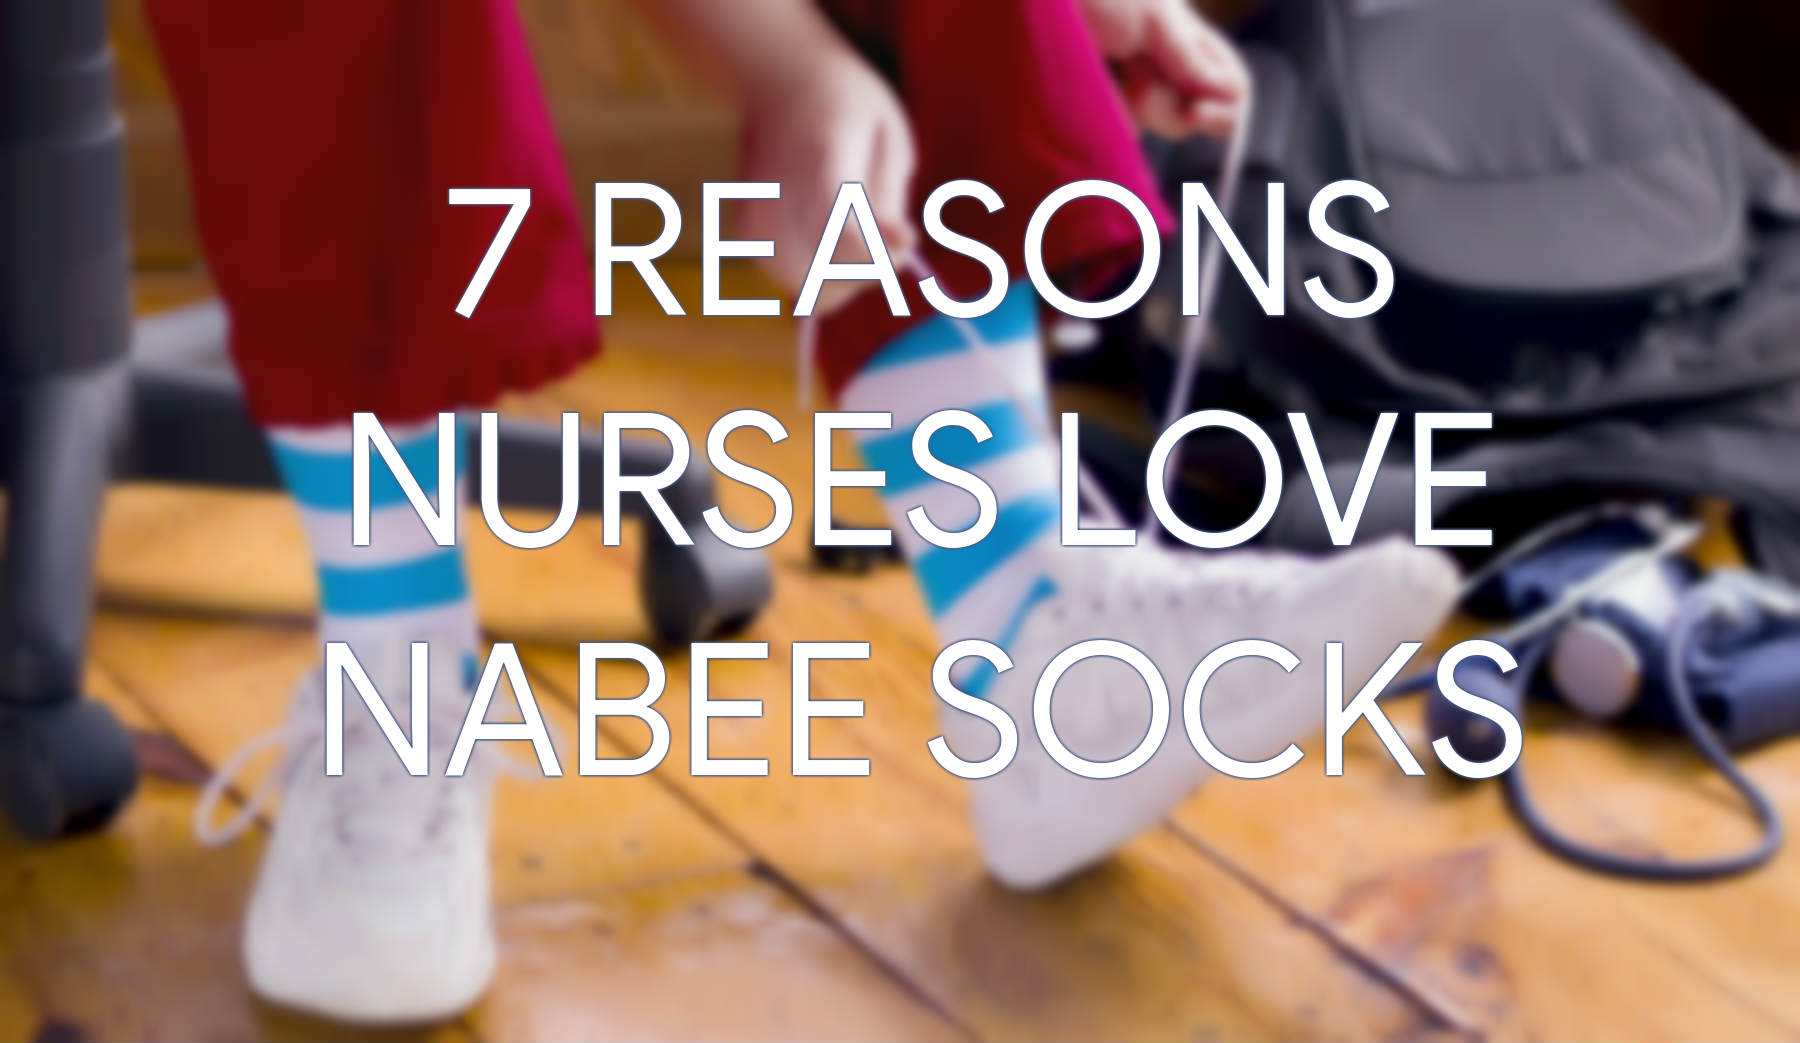 7 Reasons Nurses Love Nabee Socks!